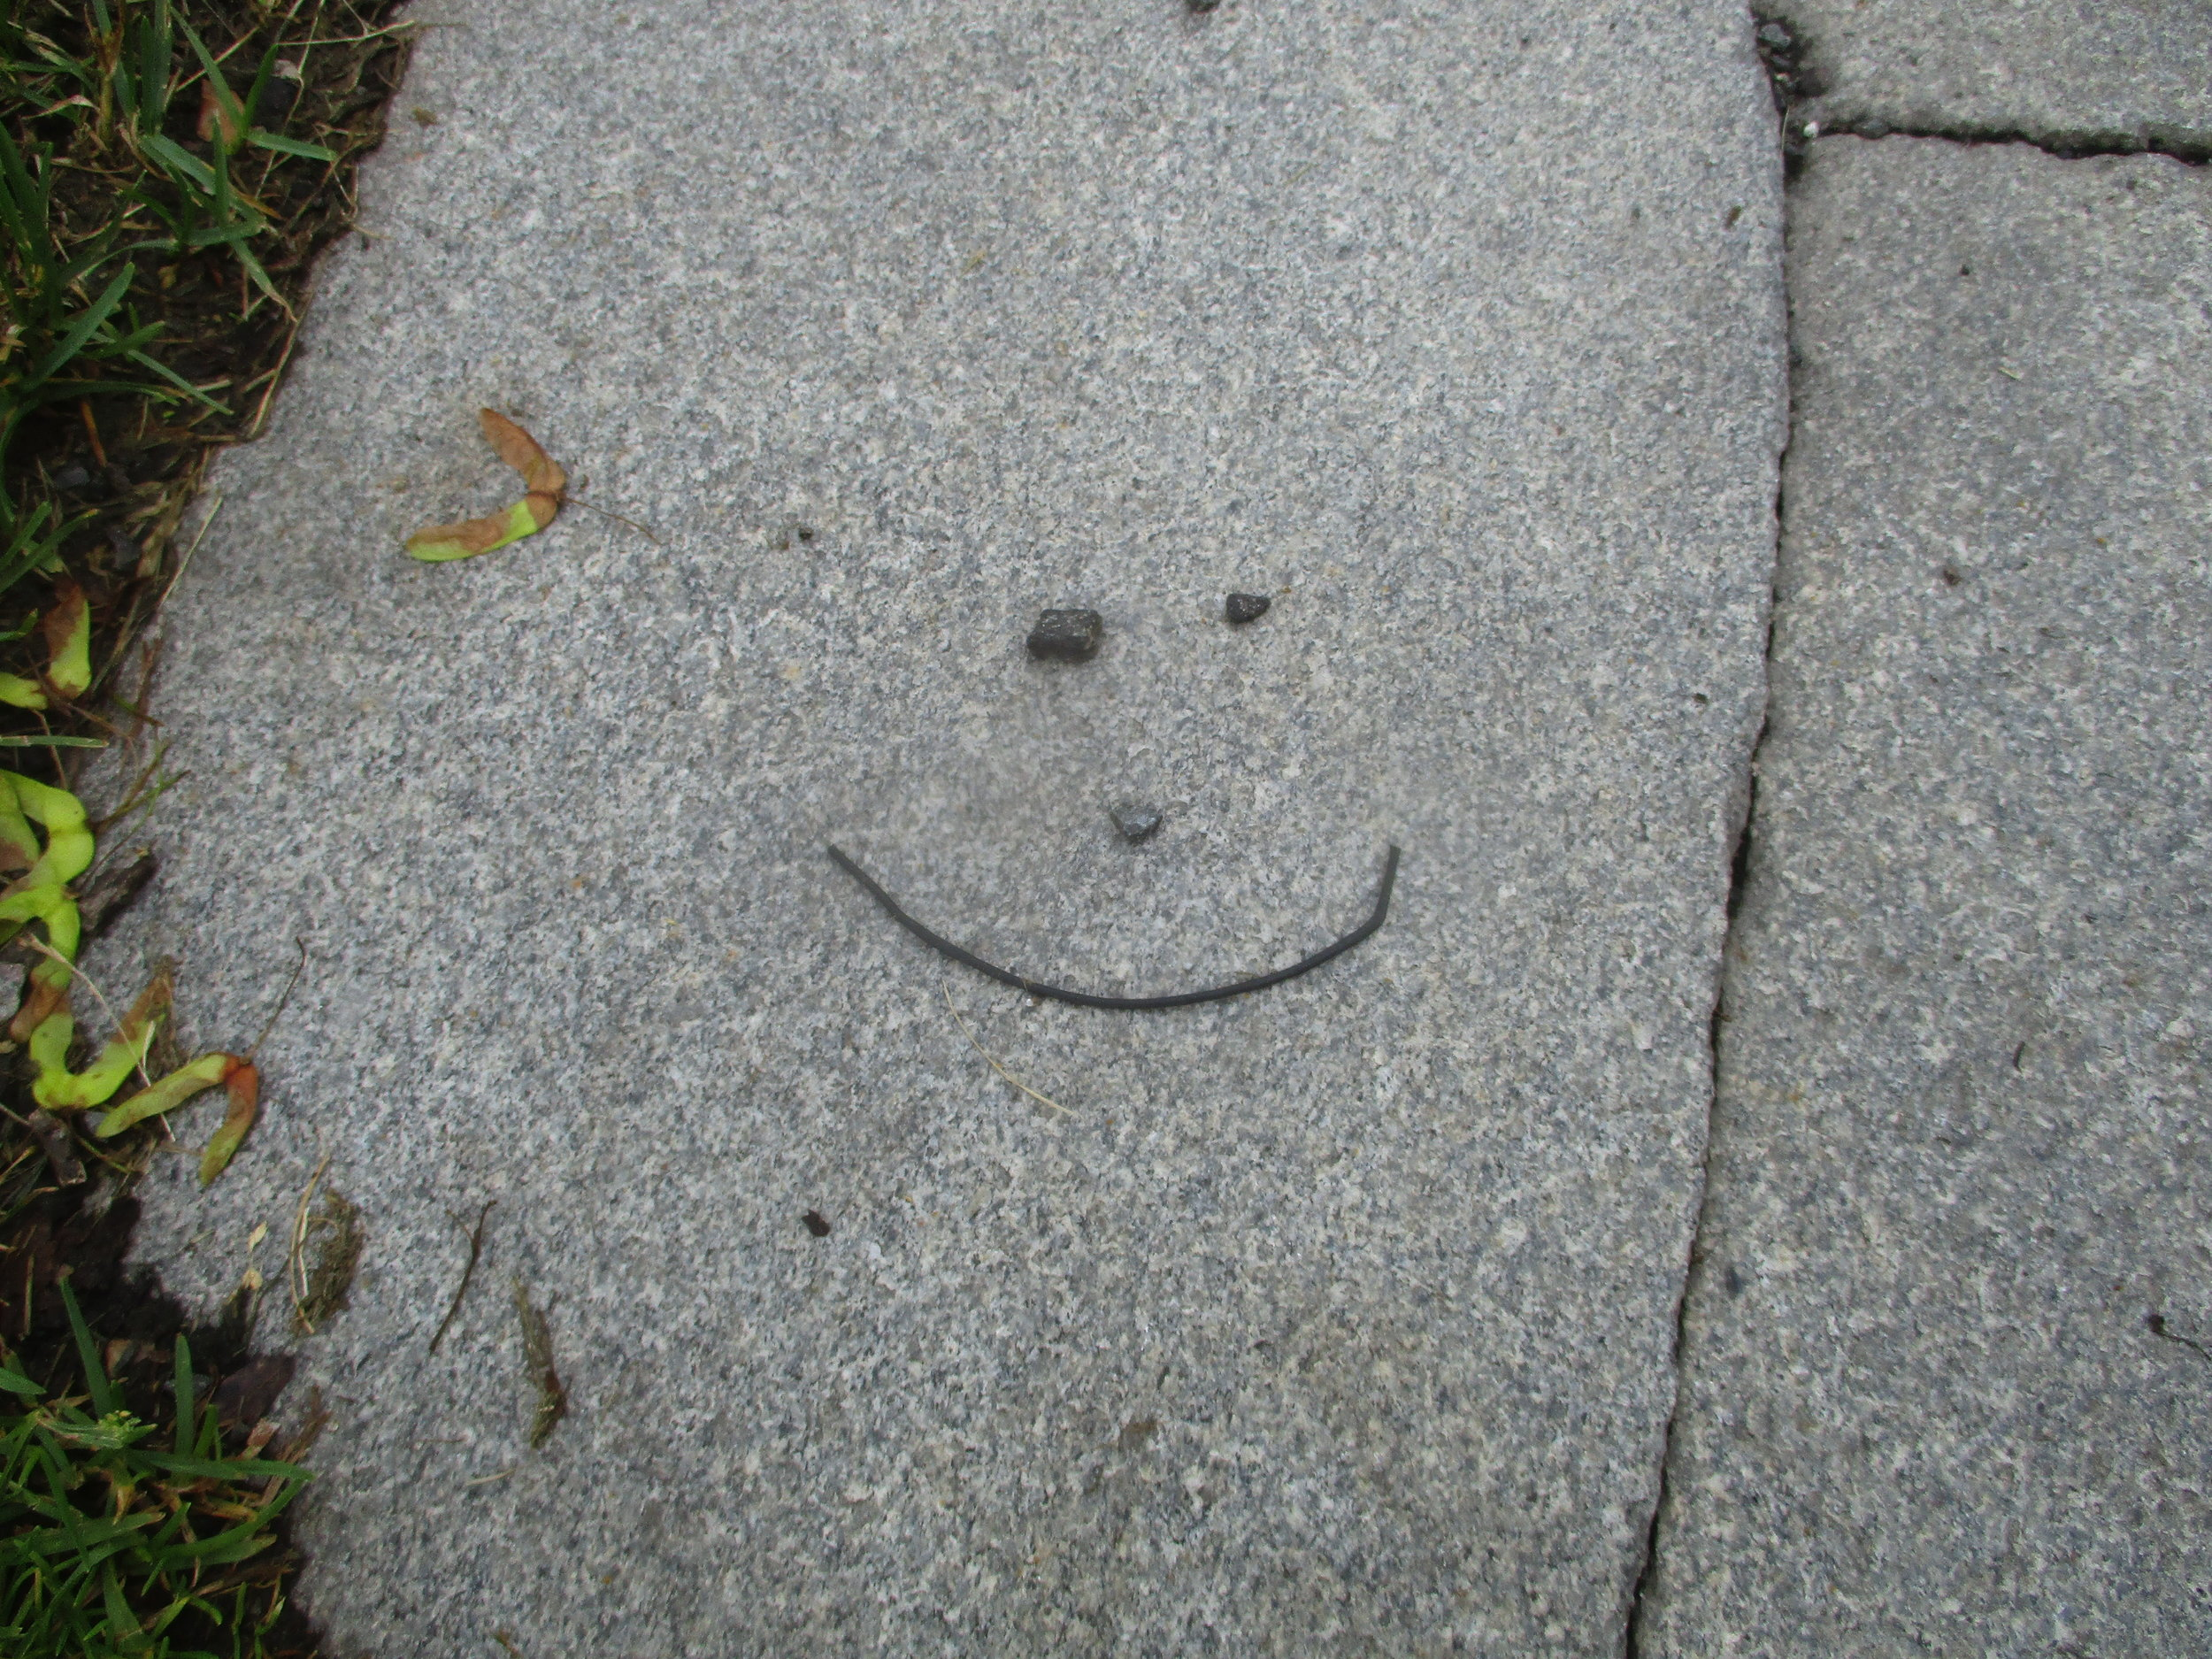 Seen Saturday on the walkway near my office. Coincidence?